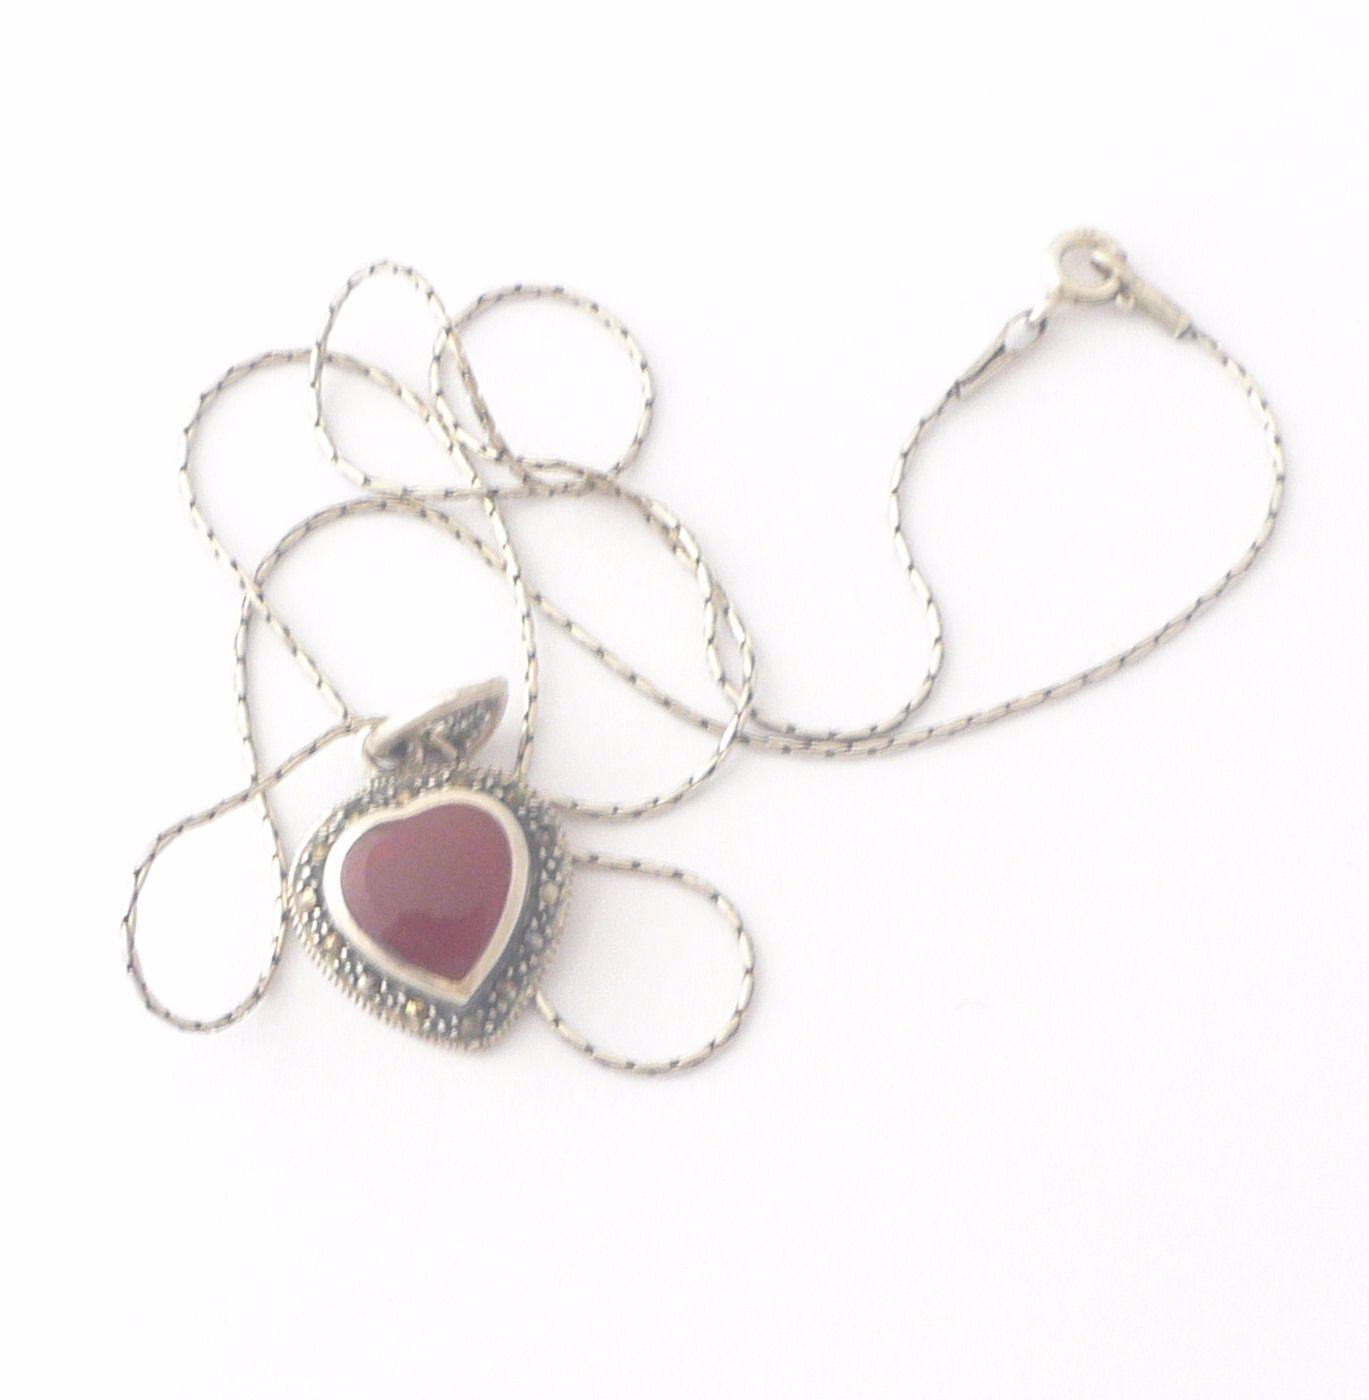 Carnelian Silver Necklace Heart (C05N)